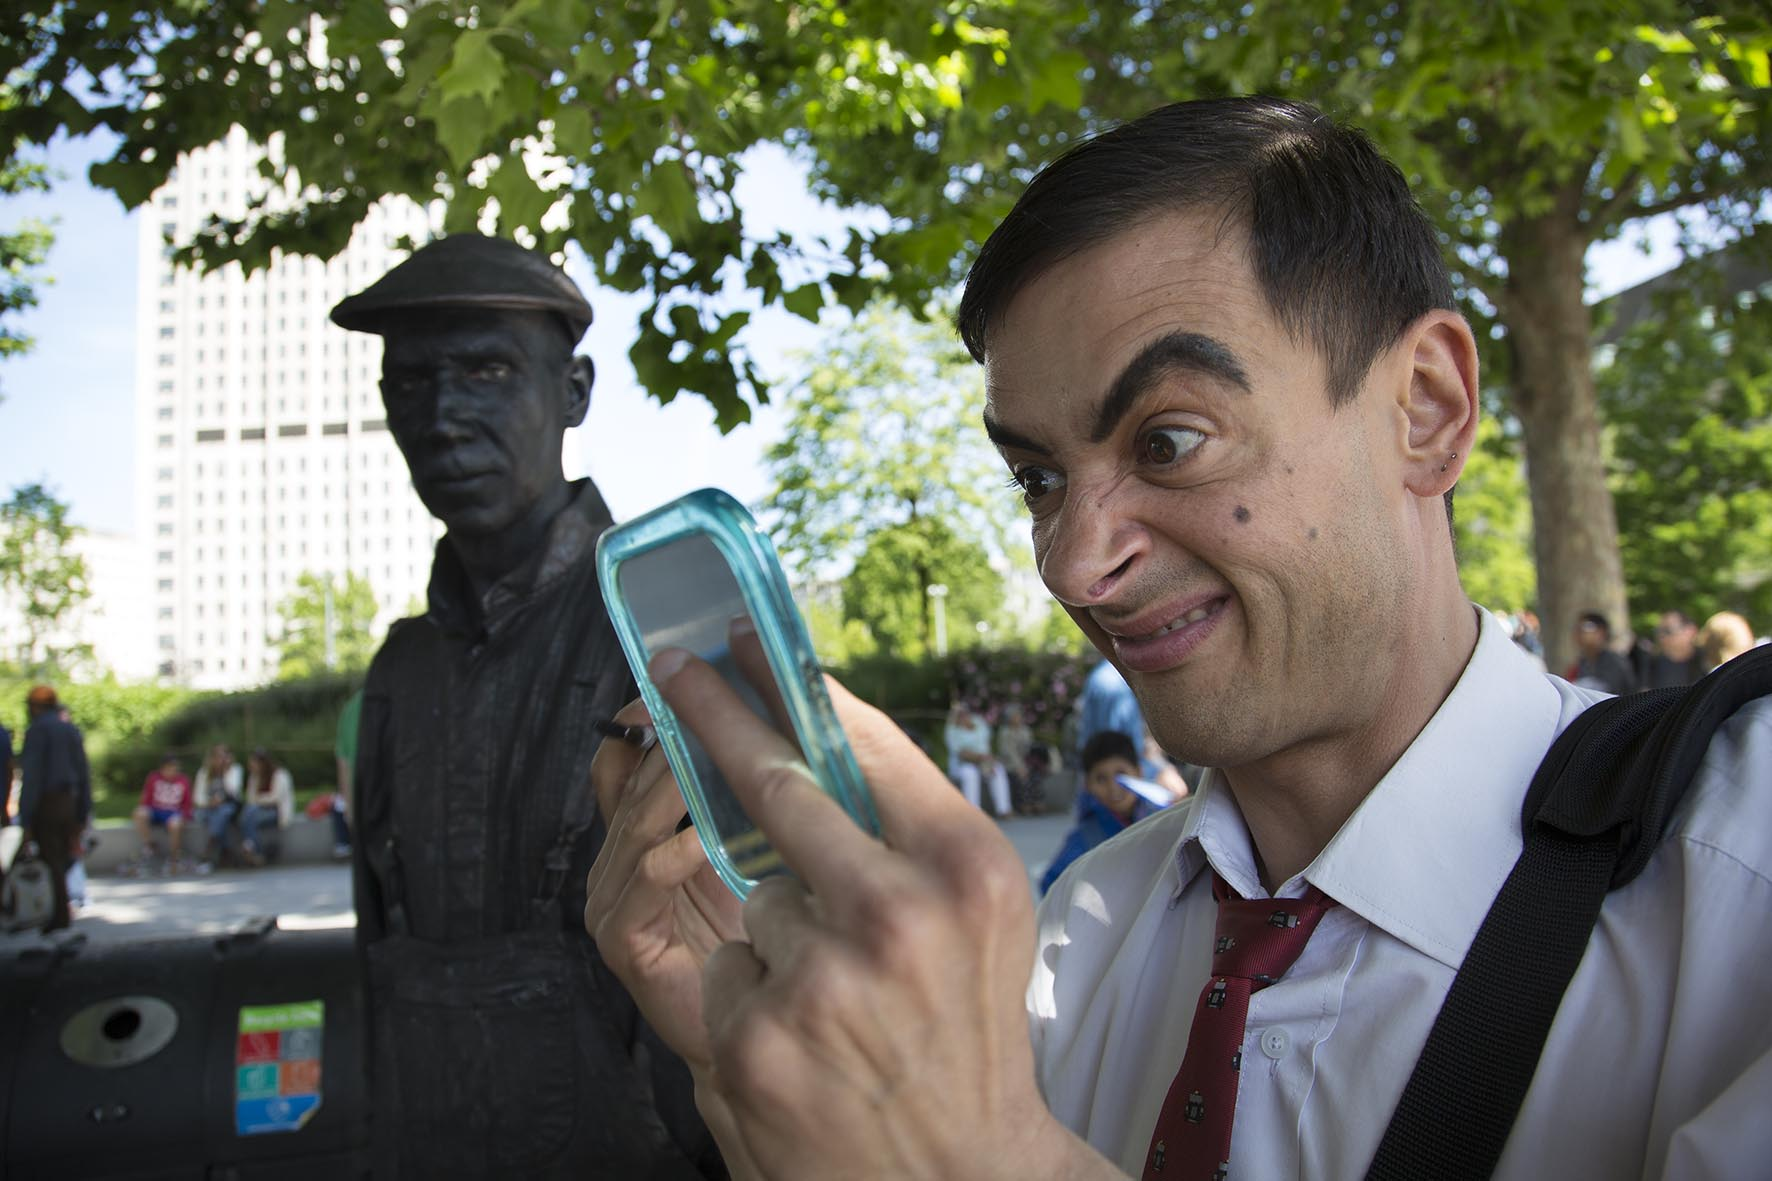 Mr Bean street performer makes some repairs to his make up.